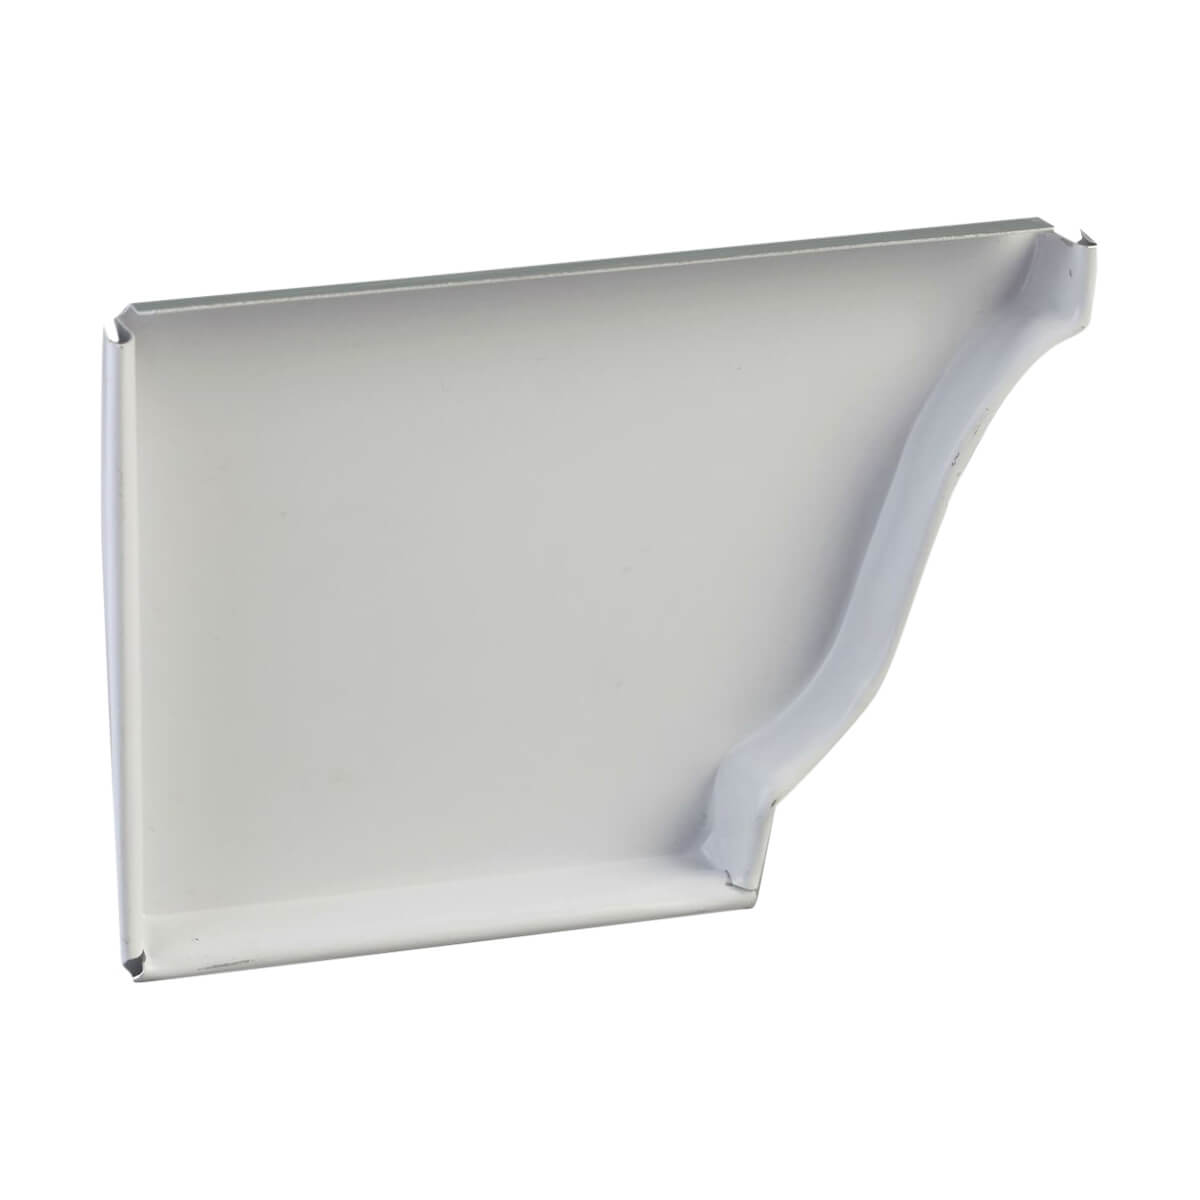 Kaycan End Cap - Left Hand - 4-in - White